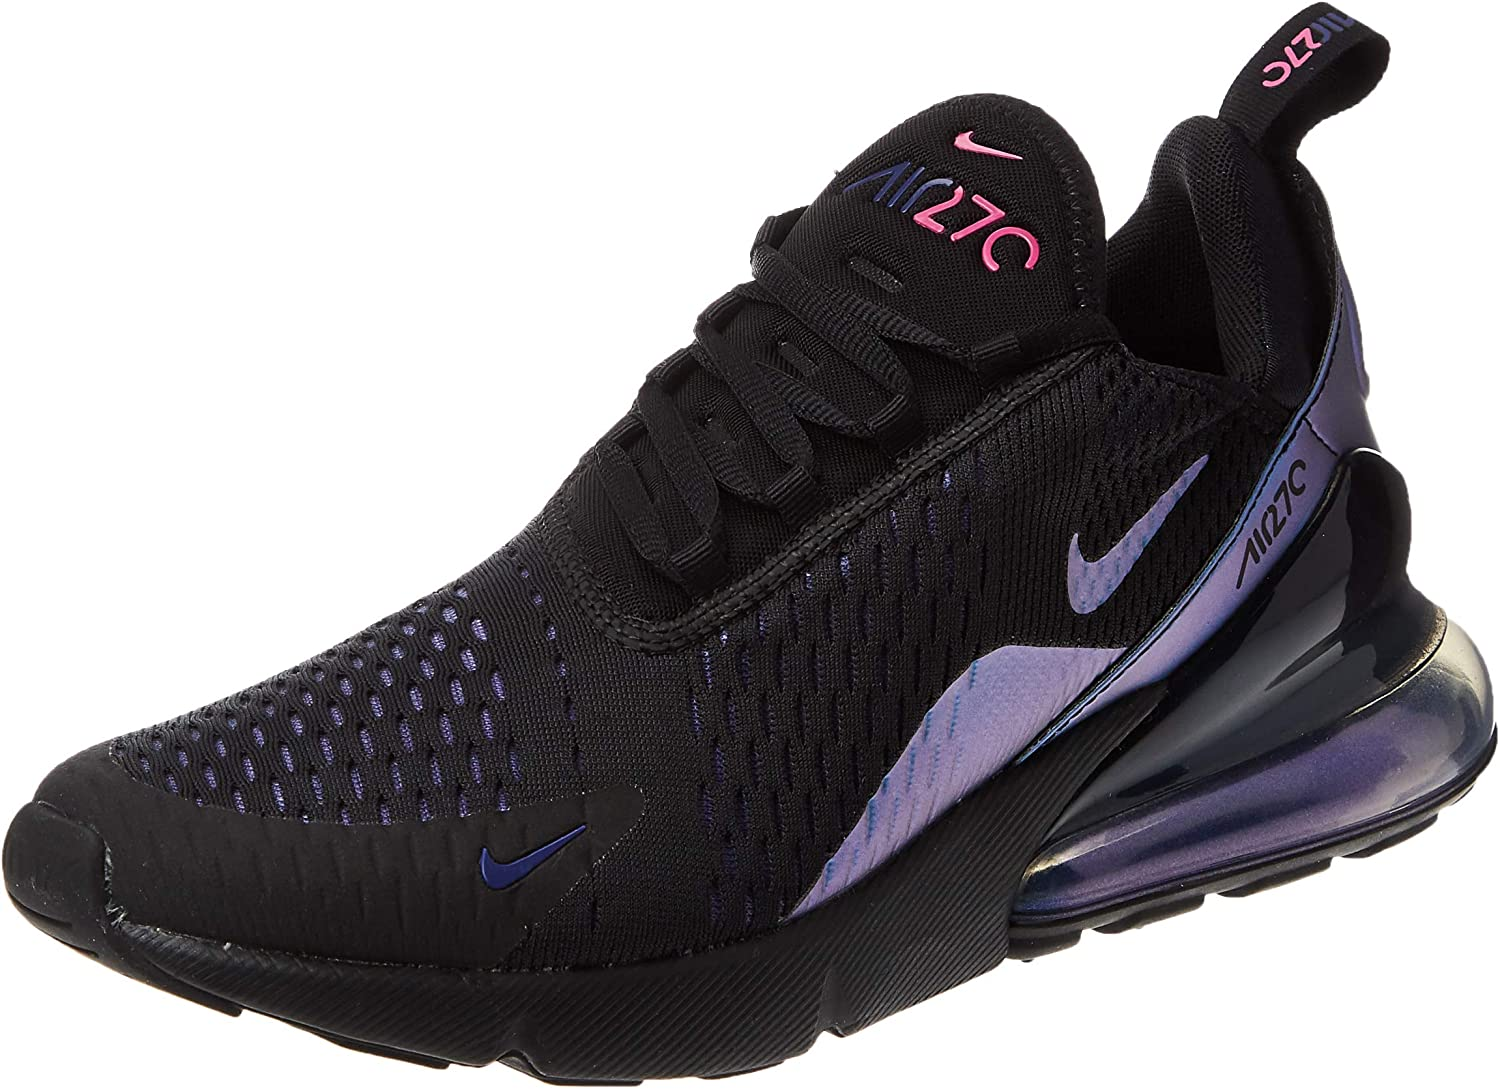 Nike AIR Max 270 'Throwback Future' AH8050 020